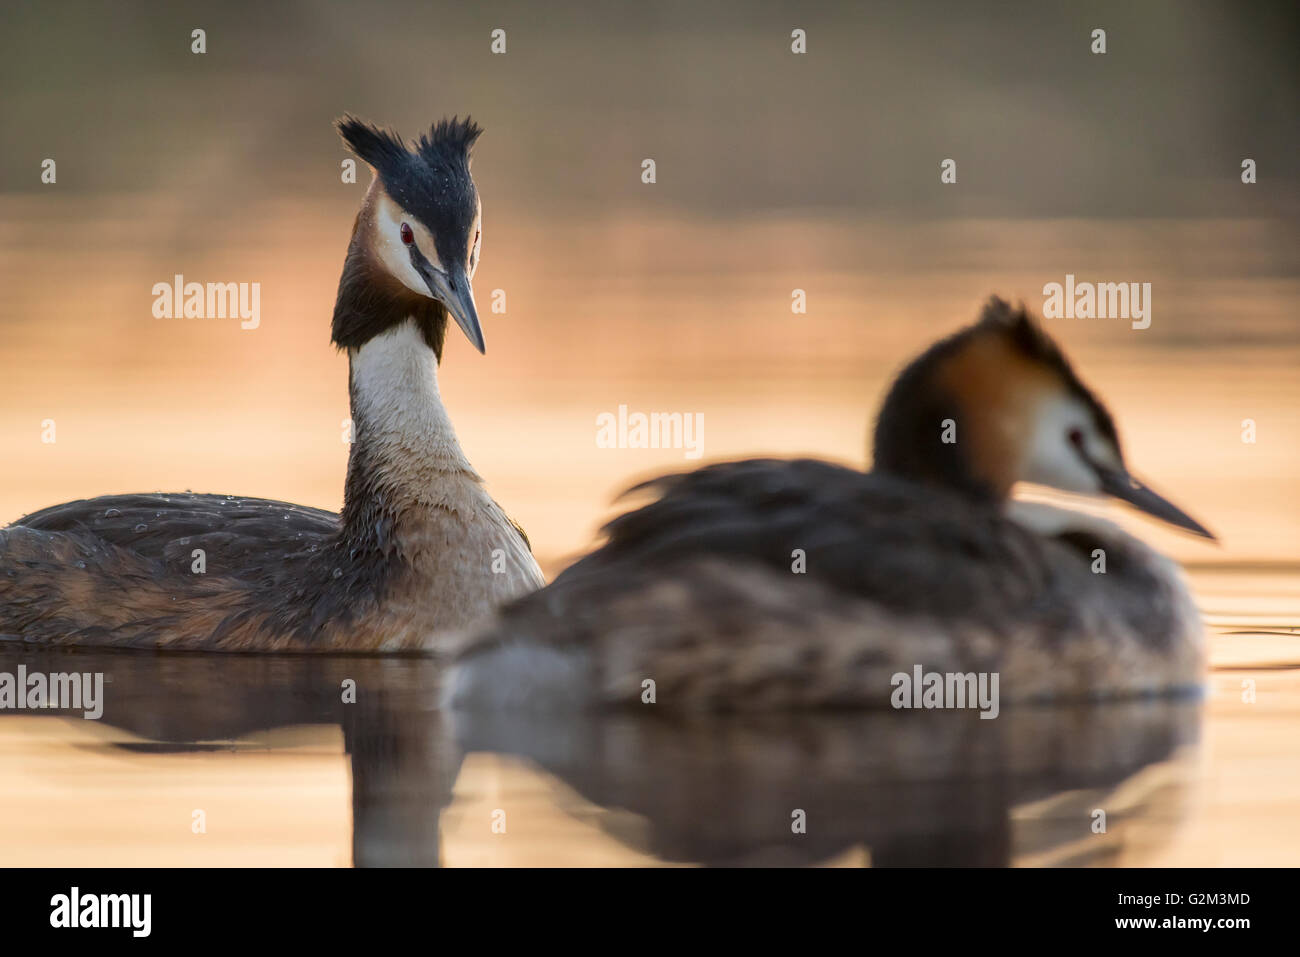 Great Crested Grebes on the lake in the evening - Stock Image